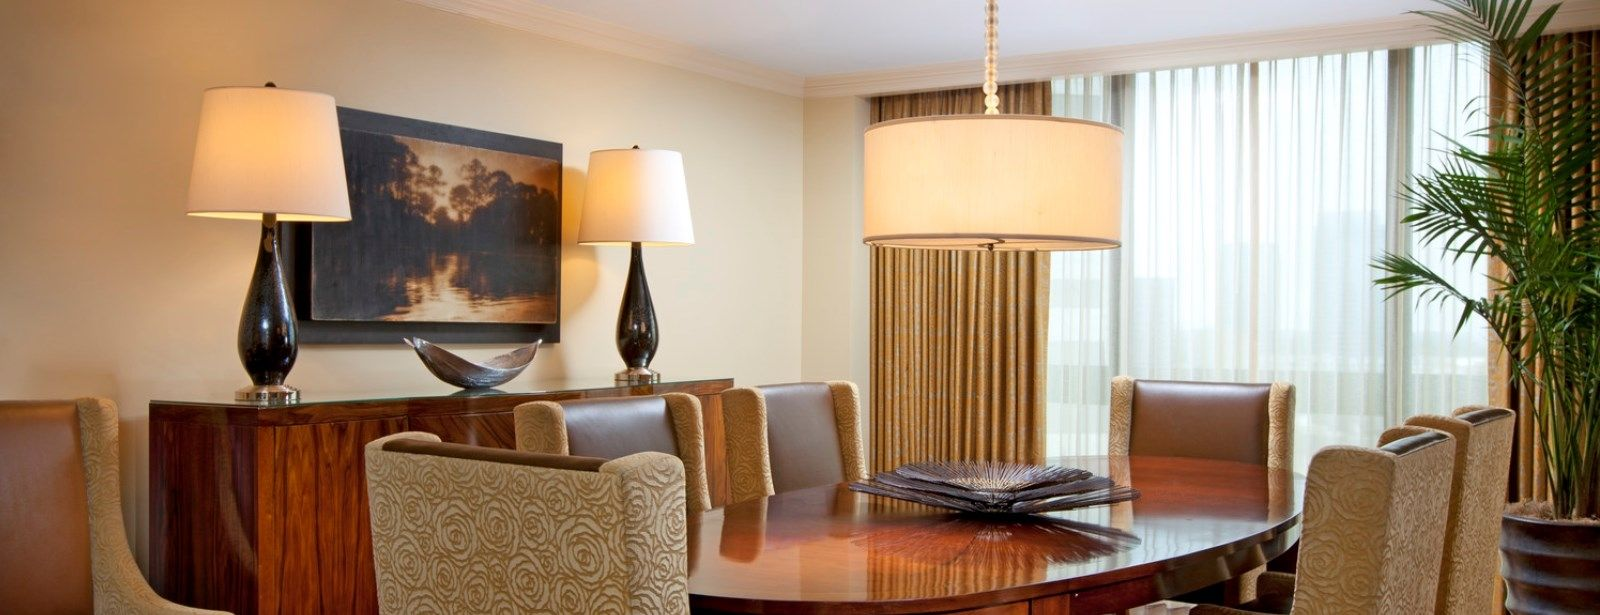 Royal Suite - Luxury Hotels in Houston - The St. Regis